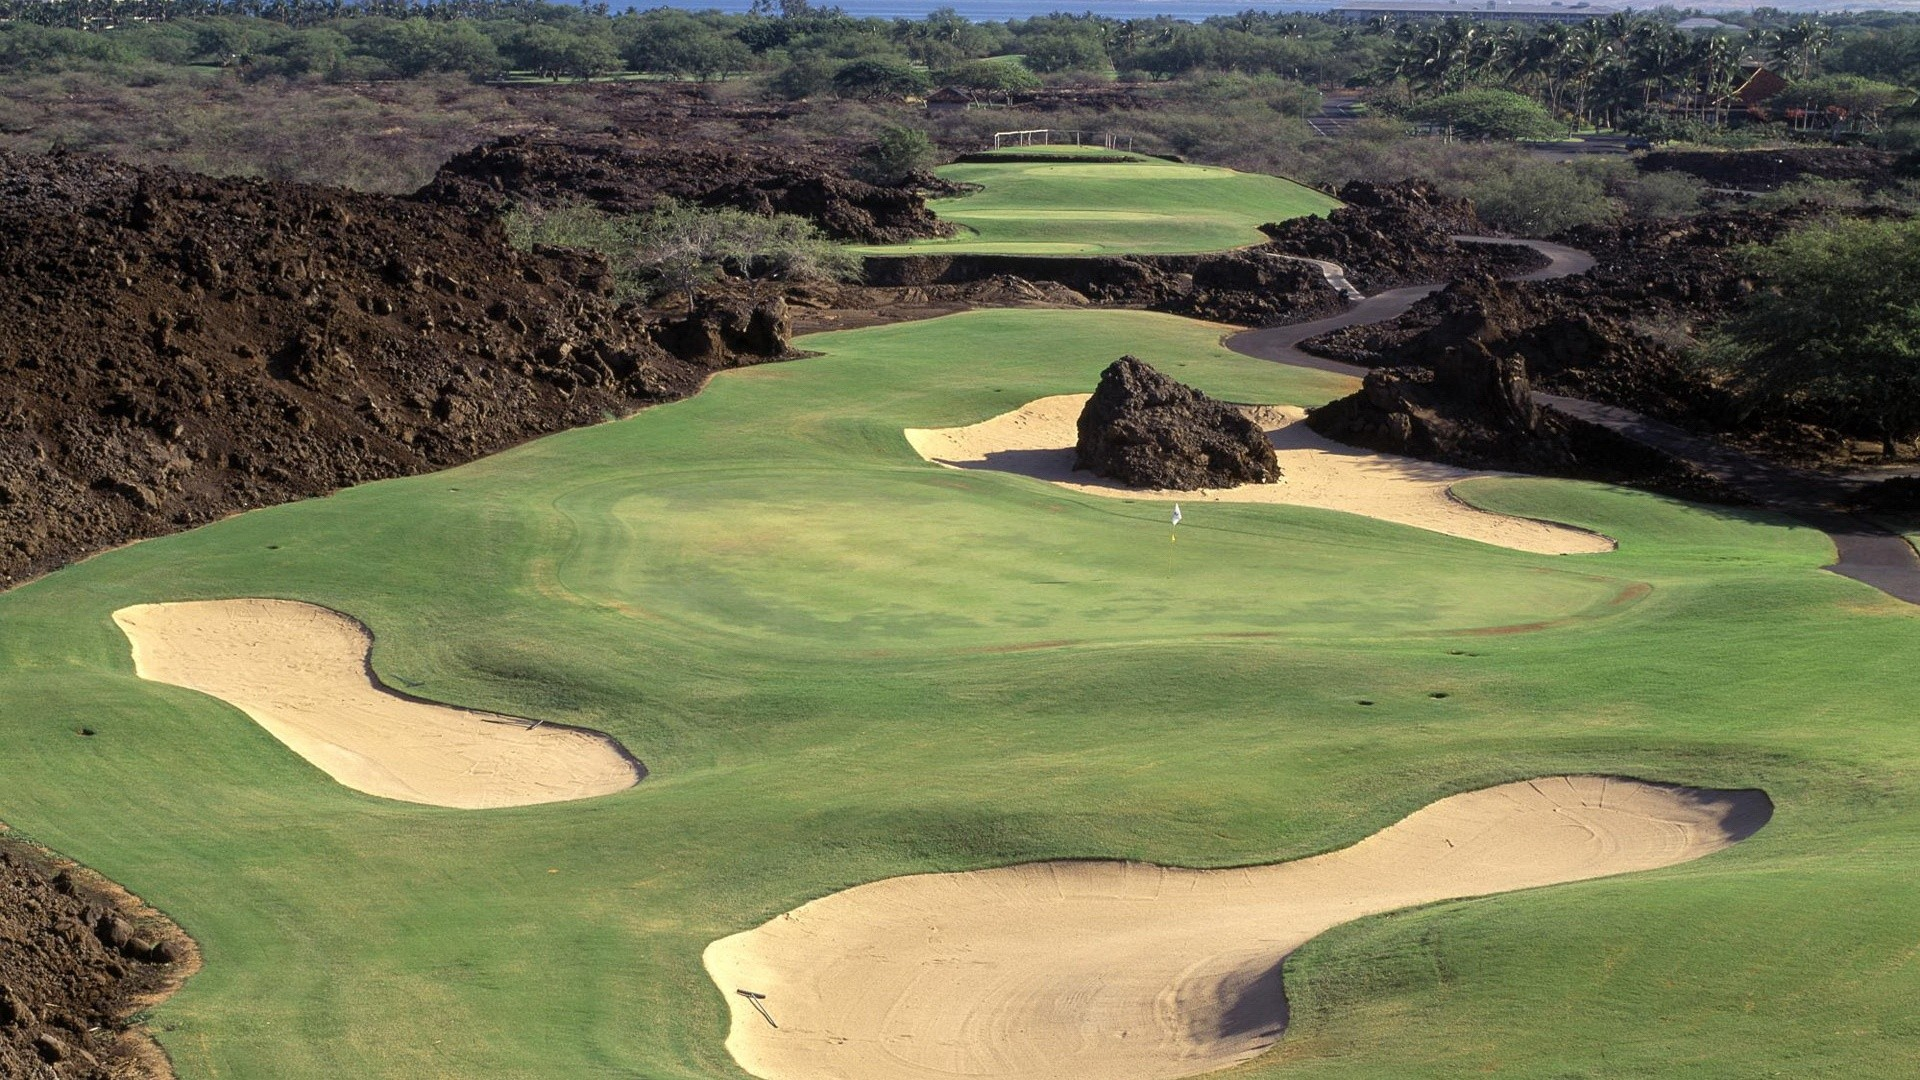 golf course with sand